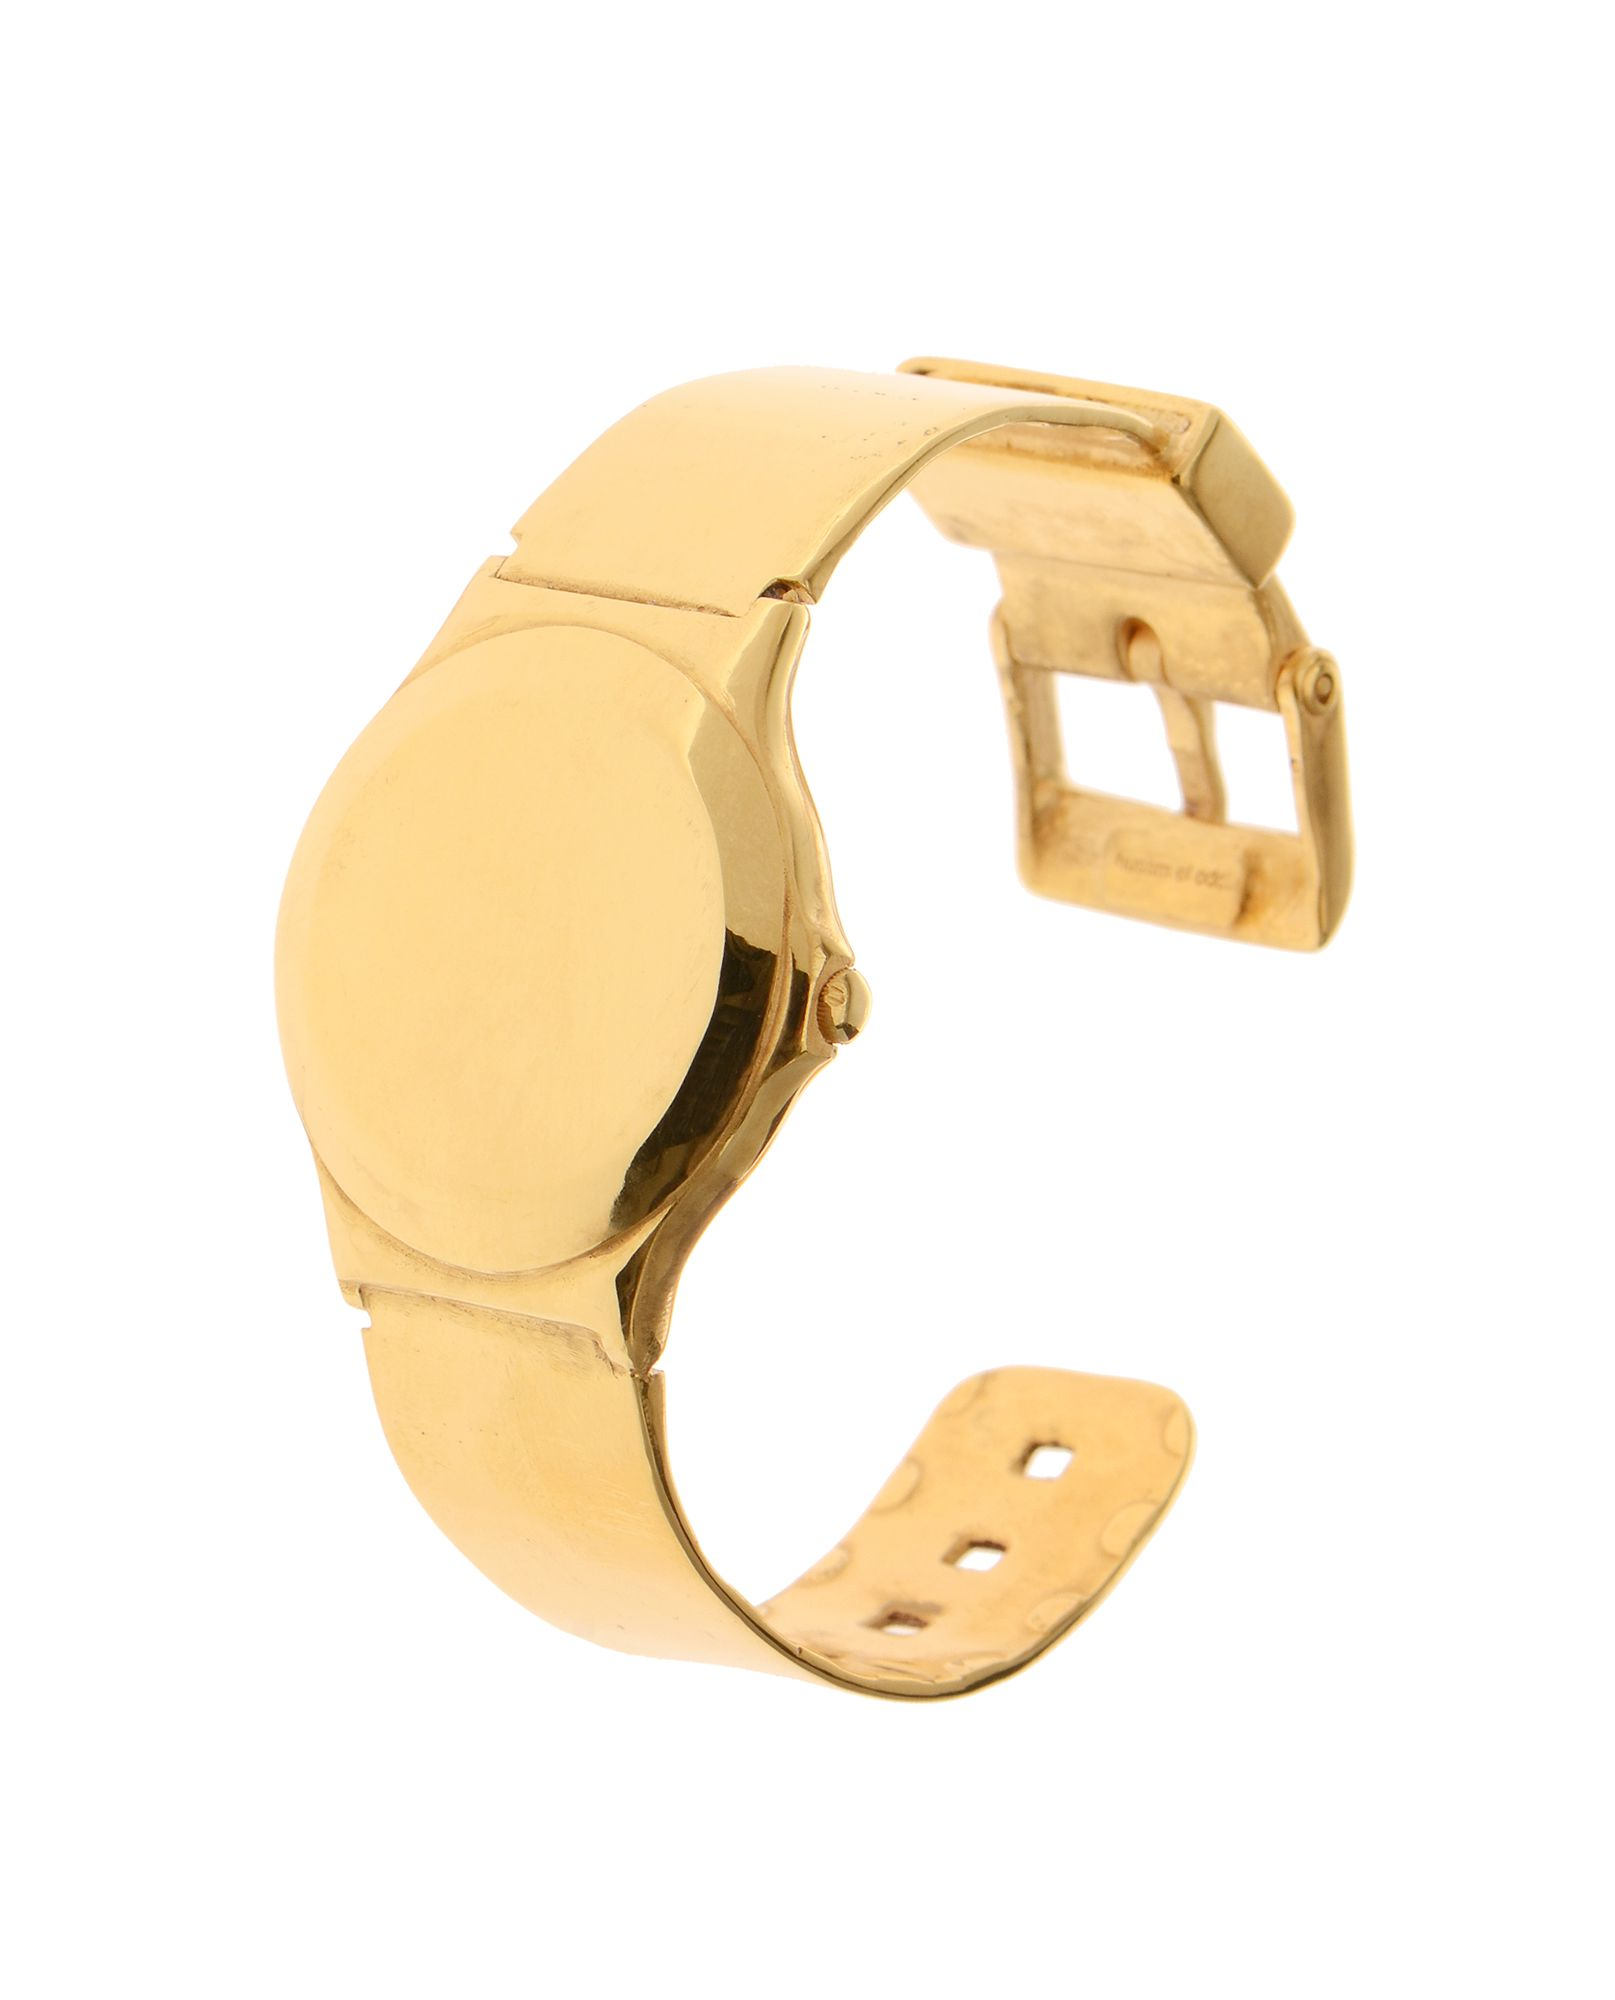 Husam el odeh k gold plated watch cuffif youure in the market